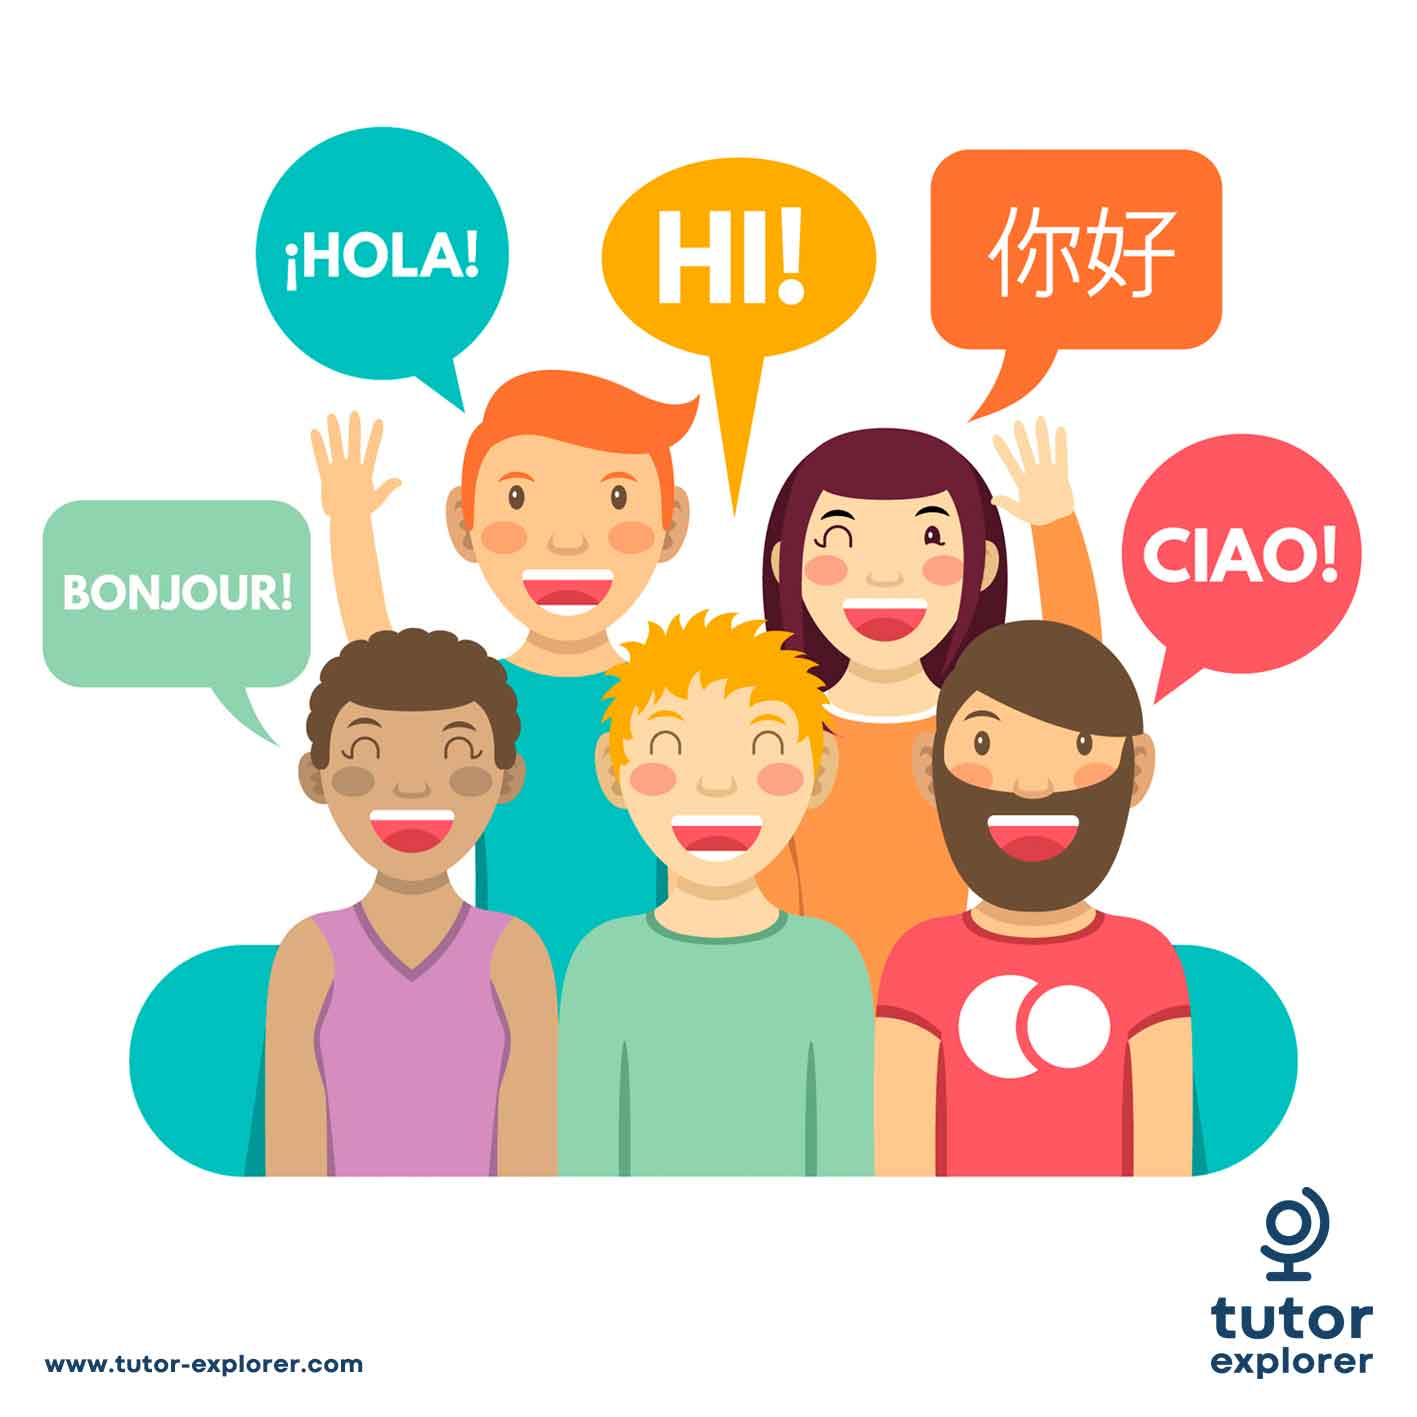 Tutor Explorer - Online and Home Based Tutors for one to one private tuition - www.tutor-explorer.com - Tutors For Ages, Levels and Subjects at Pre-School - Primary School - Secondary School - College - University - Adult Learning Levels